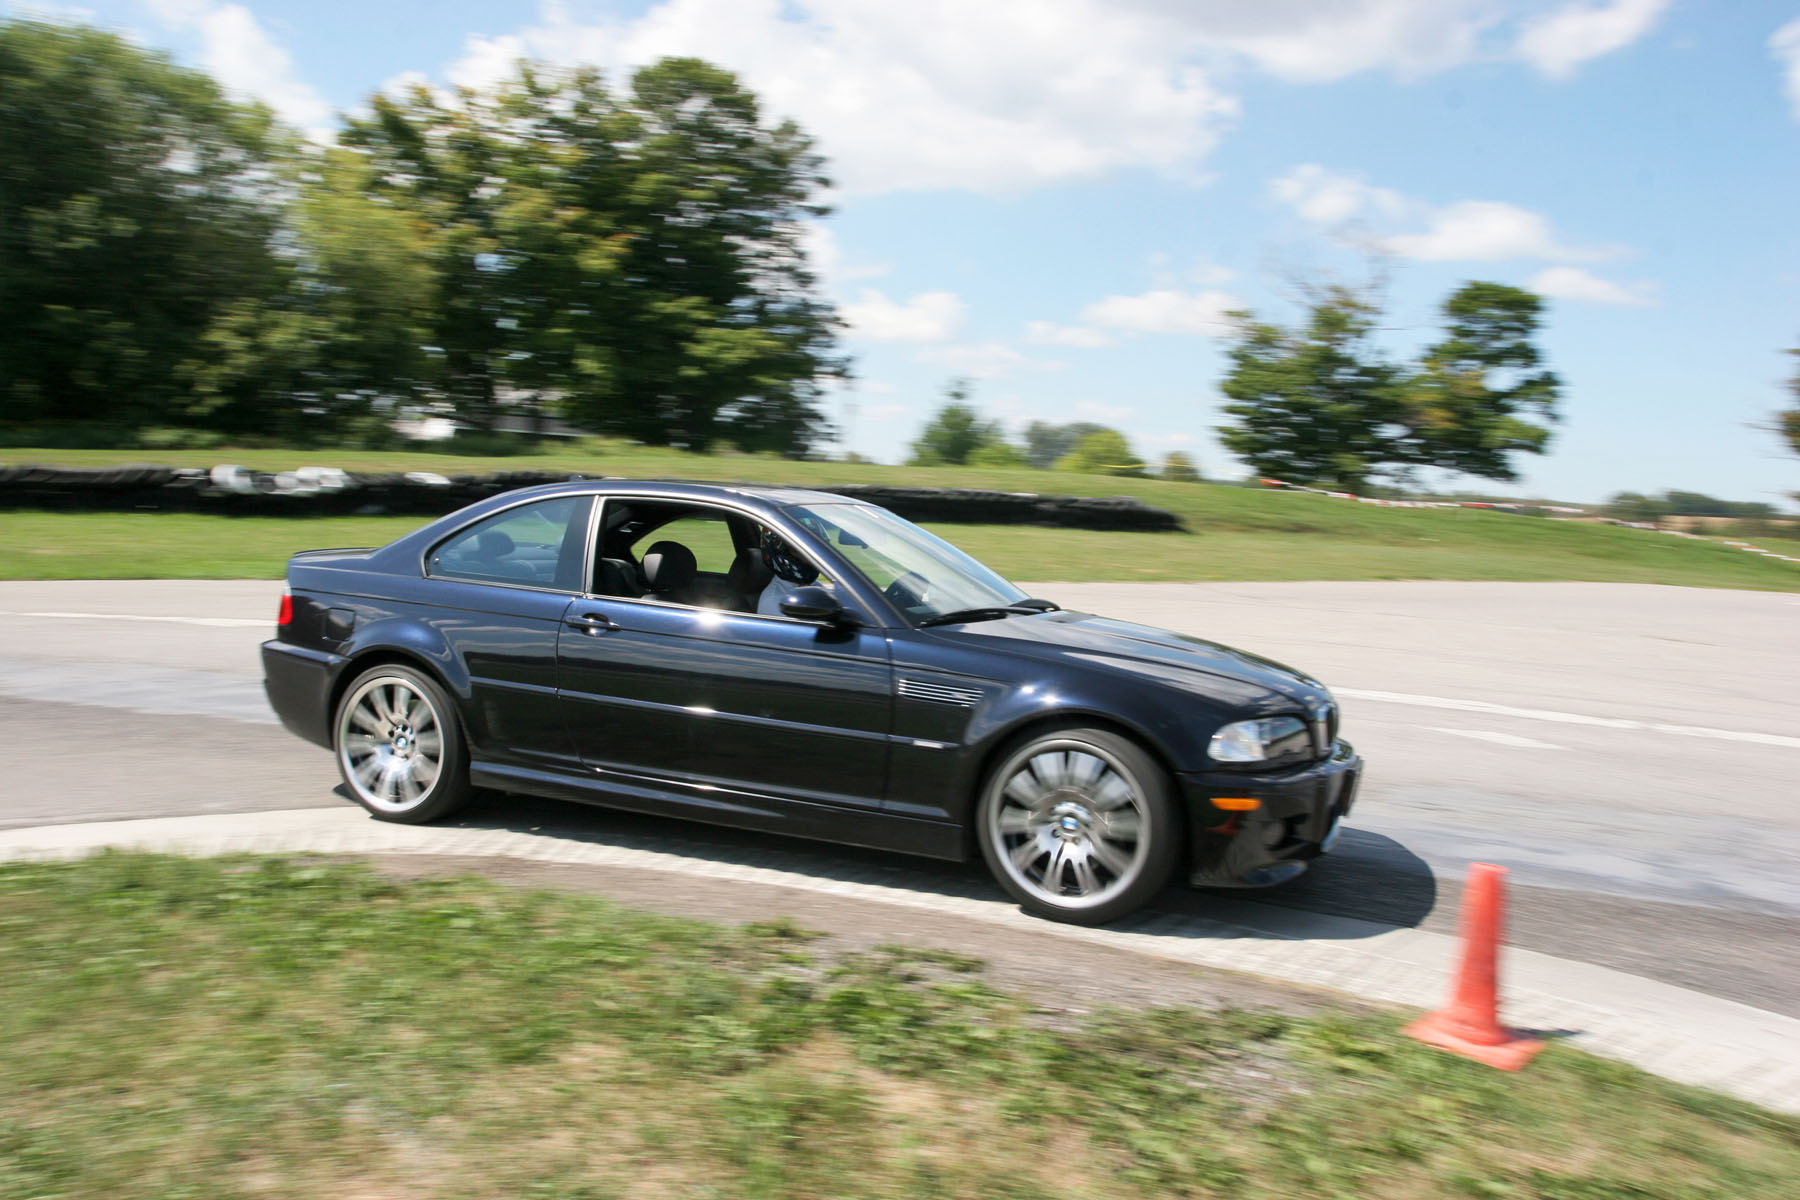 Driving on a race track or towing can push the vehicle's brakes to their limit, thanks to the intense heat generated. For these reasons and more, brakes can sometimes get so hot that they don't work properly. Largely, that's because the heat begins affecting the viscosity of the fluid responsible for transmitting your pedal input to the brake calipers. From the driver's seat, overheated brakes are evidenced by a spongy pedal, longer stopping distances, and more pedal travel until things cool off. <br><br>Fading Brake Assist can help, by providing more consistent pedal feel and stopping power when things get hot. In effect, the system monitors the correlation between the brake pedal application and vehicle deceleration, ramping up stopping power automatically via increased brake pressure in situations where the brakes are fading.